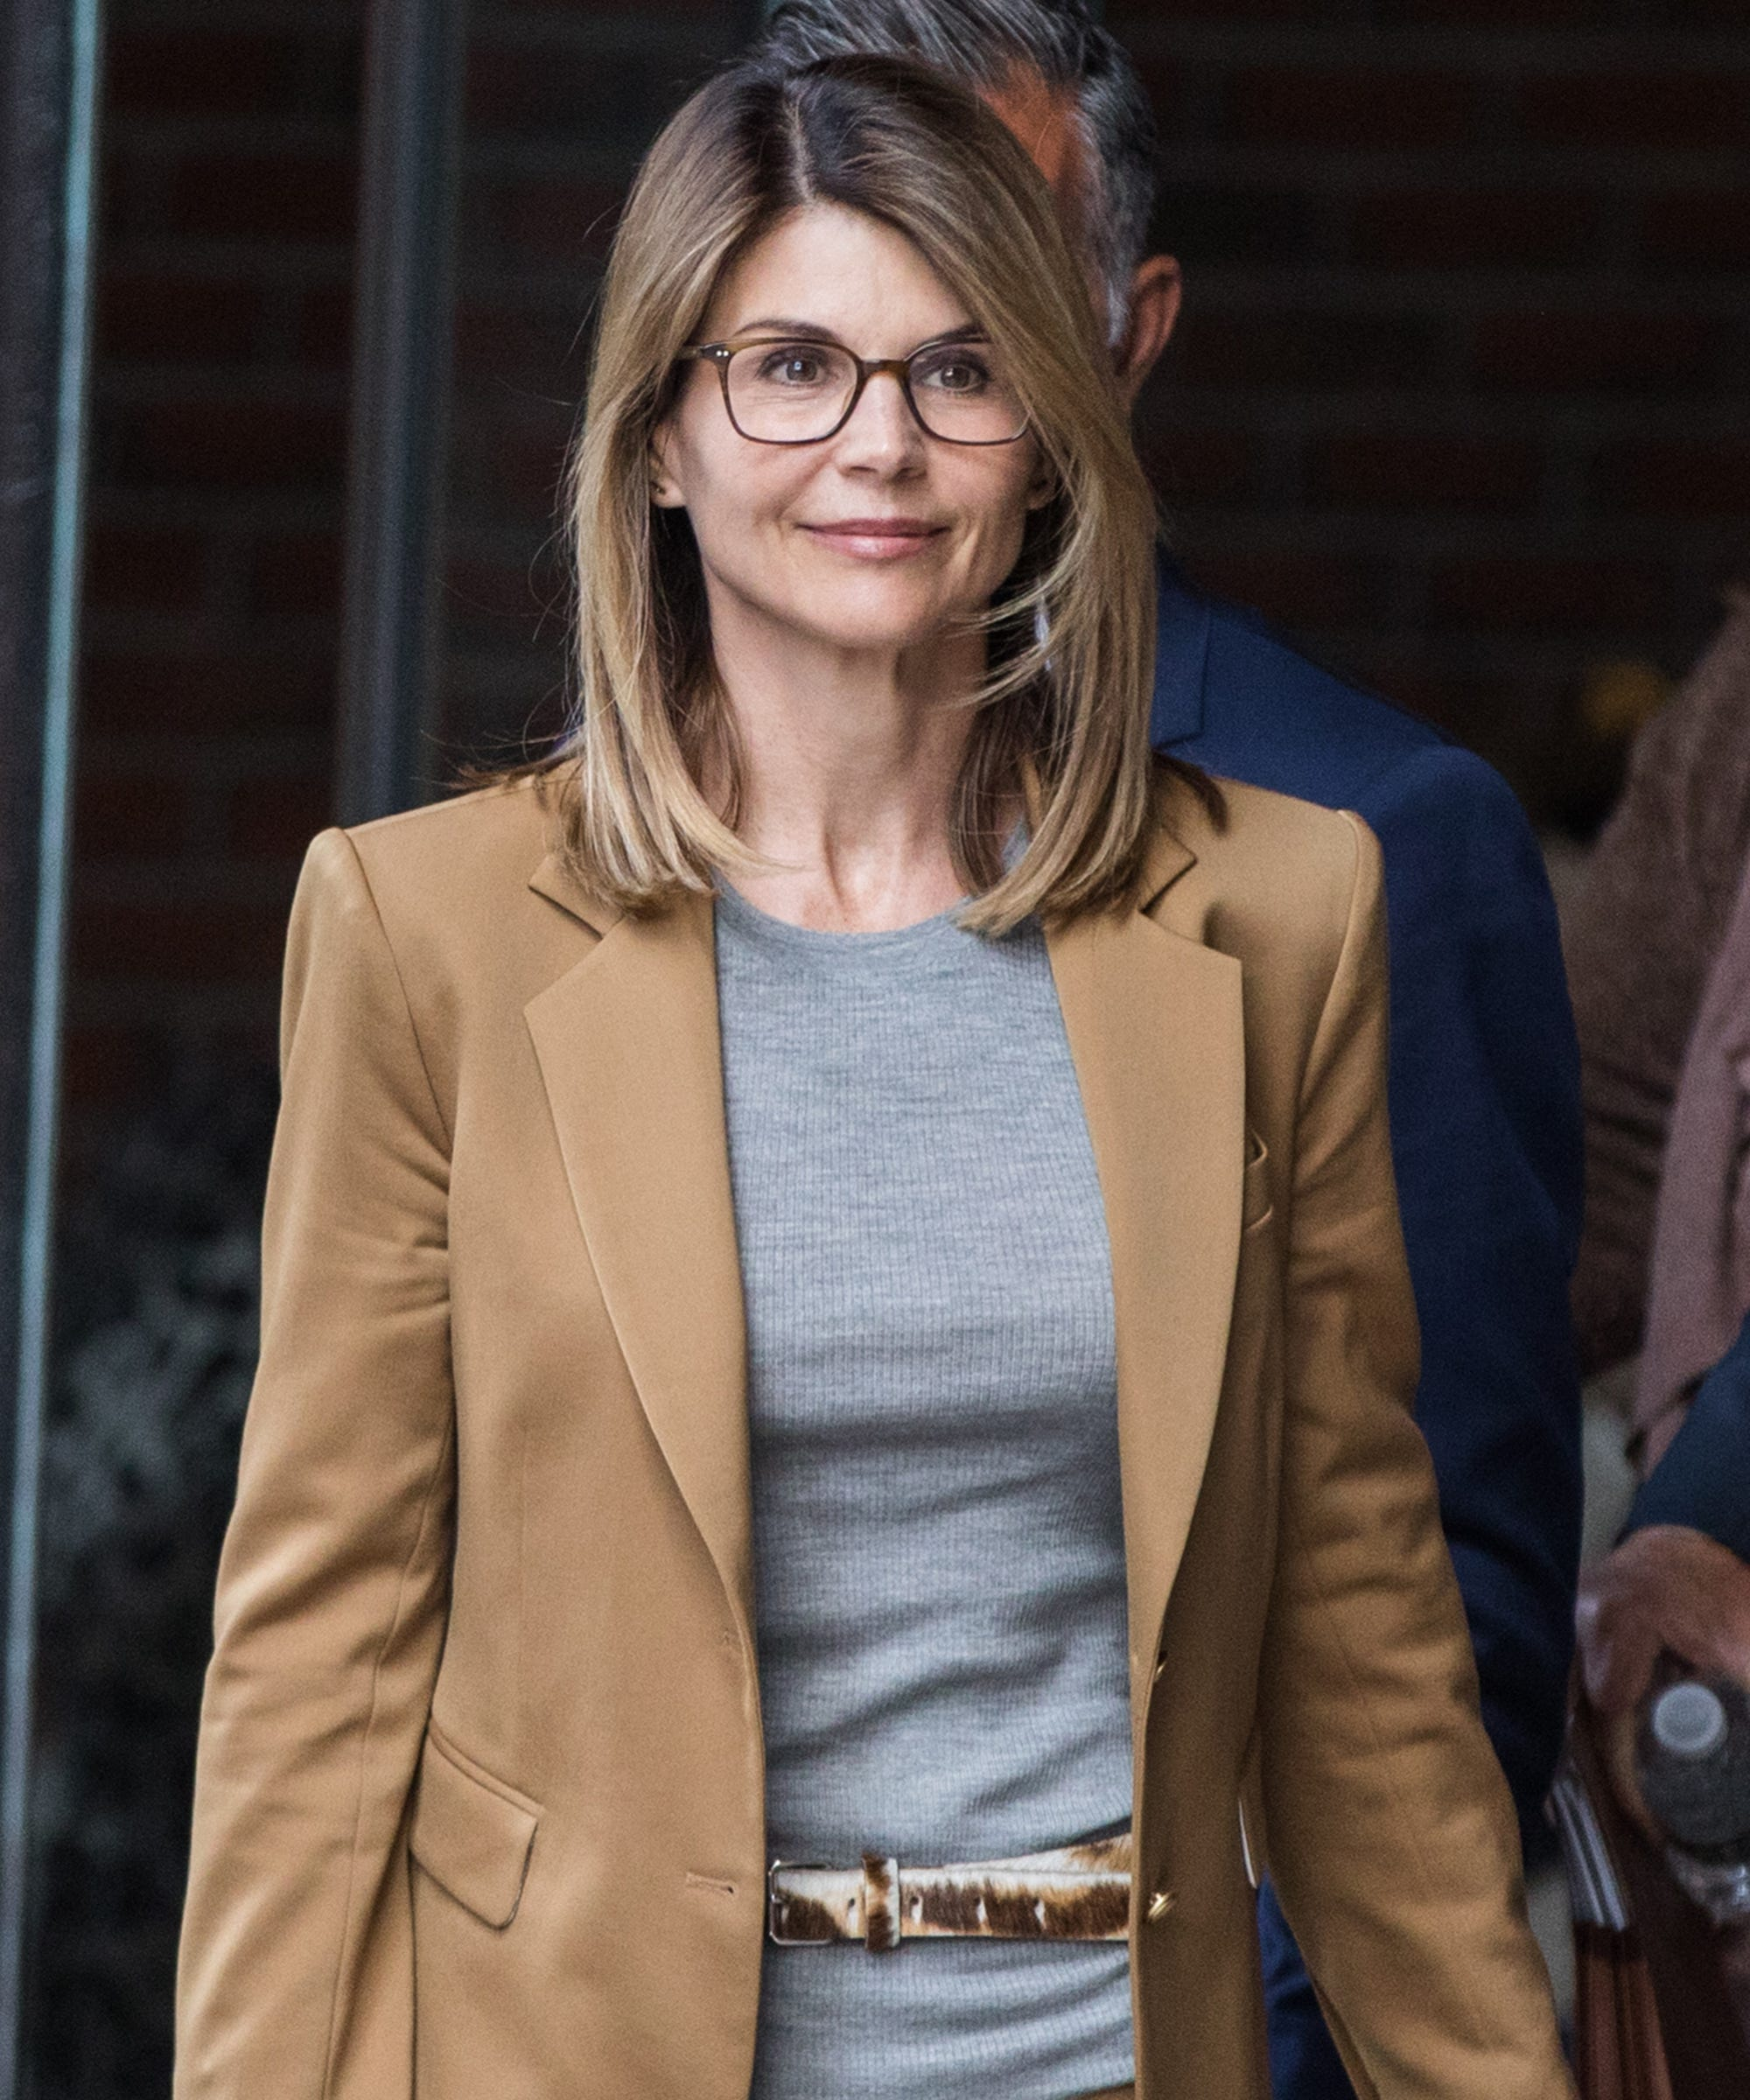 Lori Loughlin Analyzed Her Own Courtroom Body Language & It's Not Great